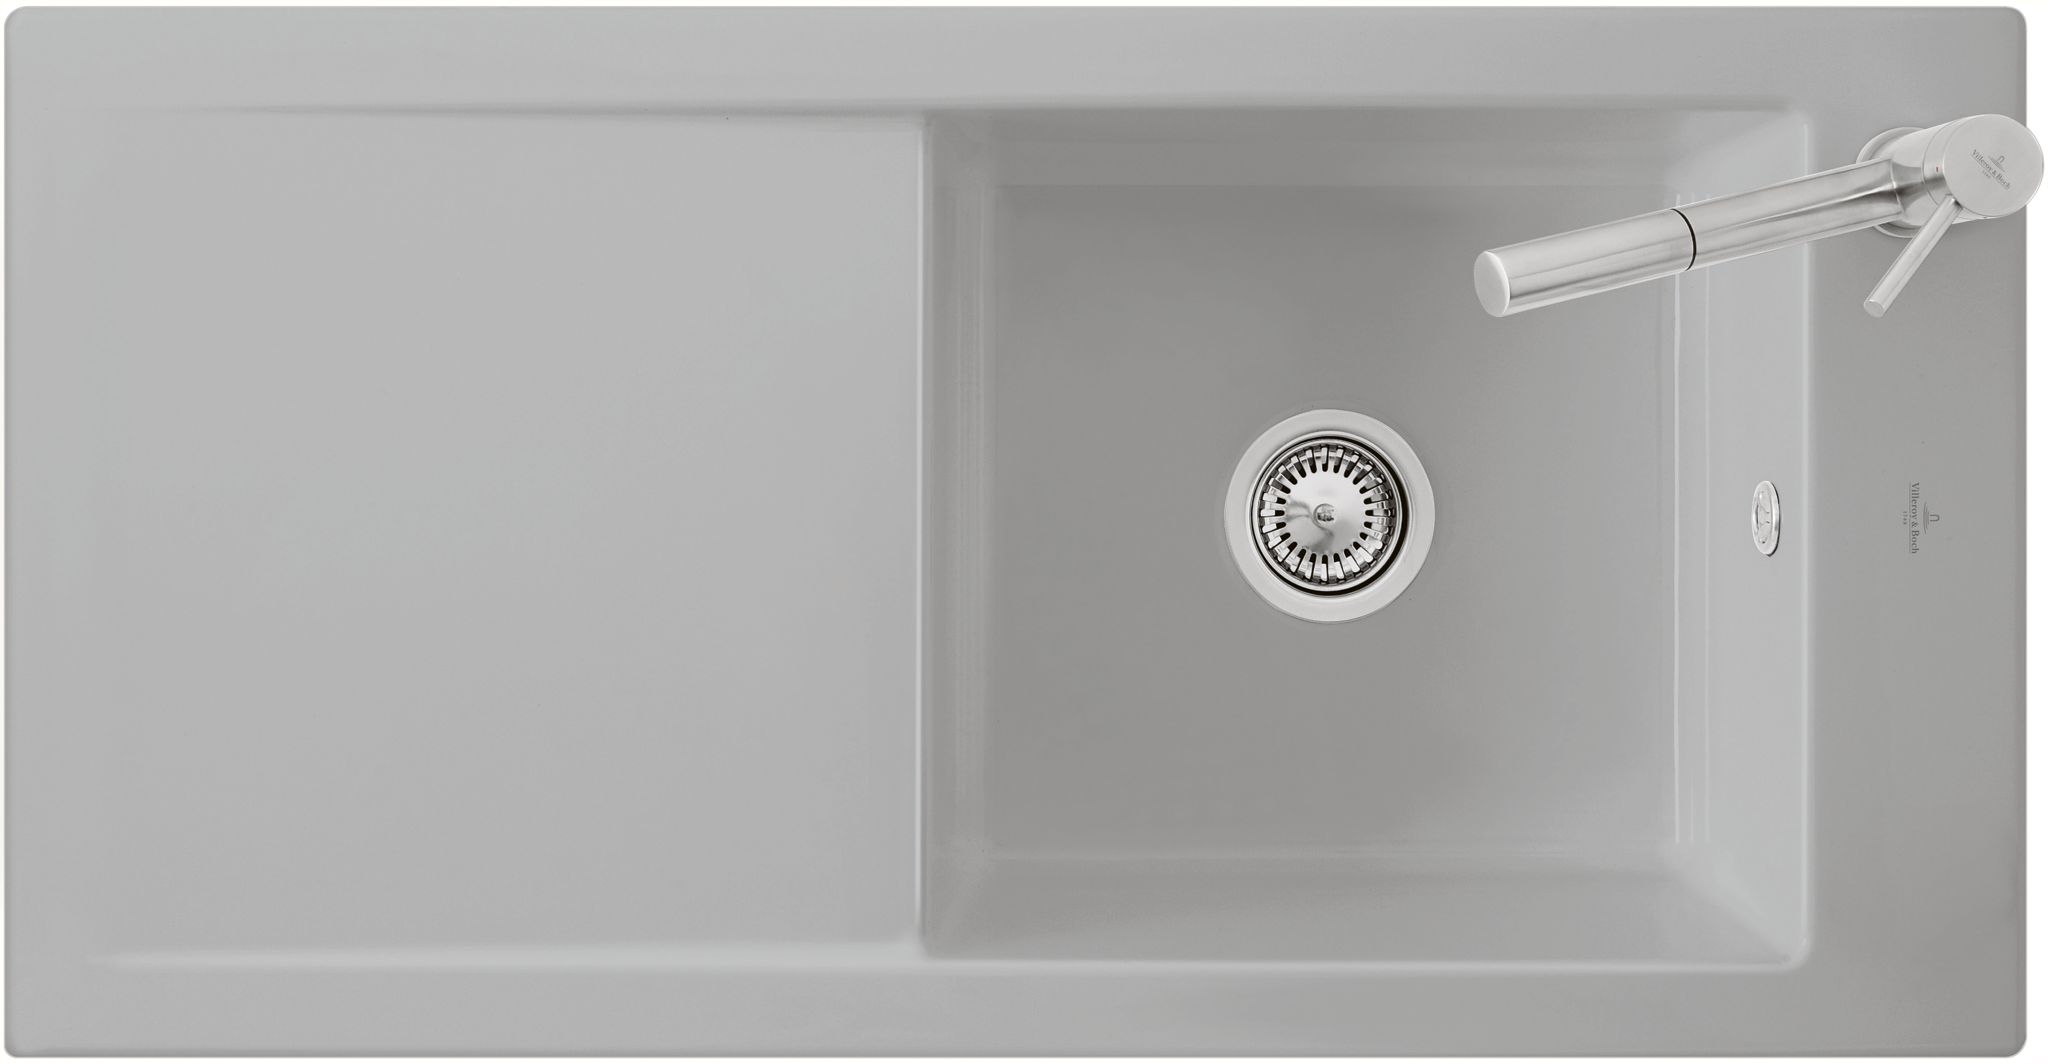 Exceptionnel Timeline Flat Flush Fit Sinks